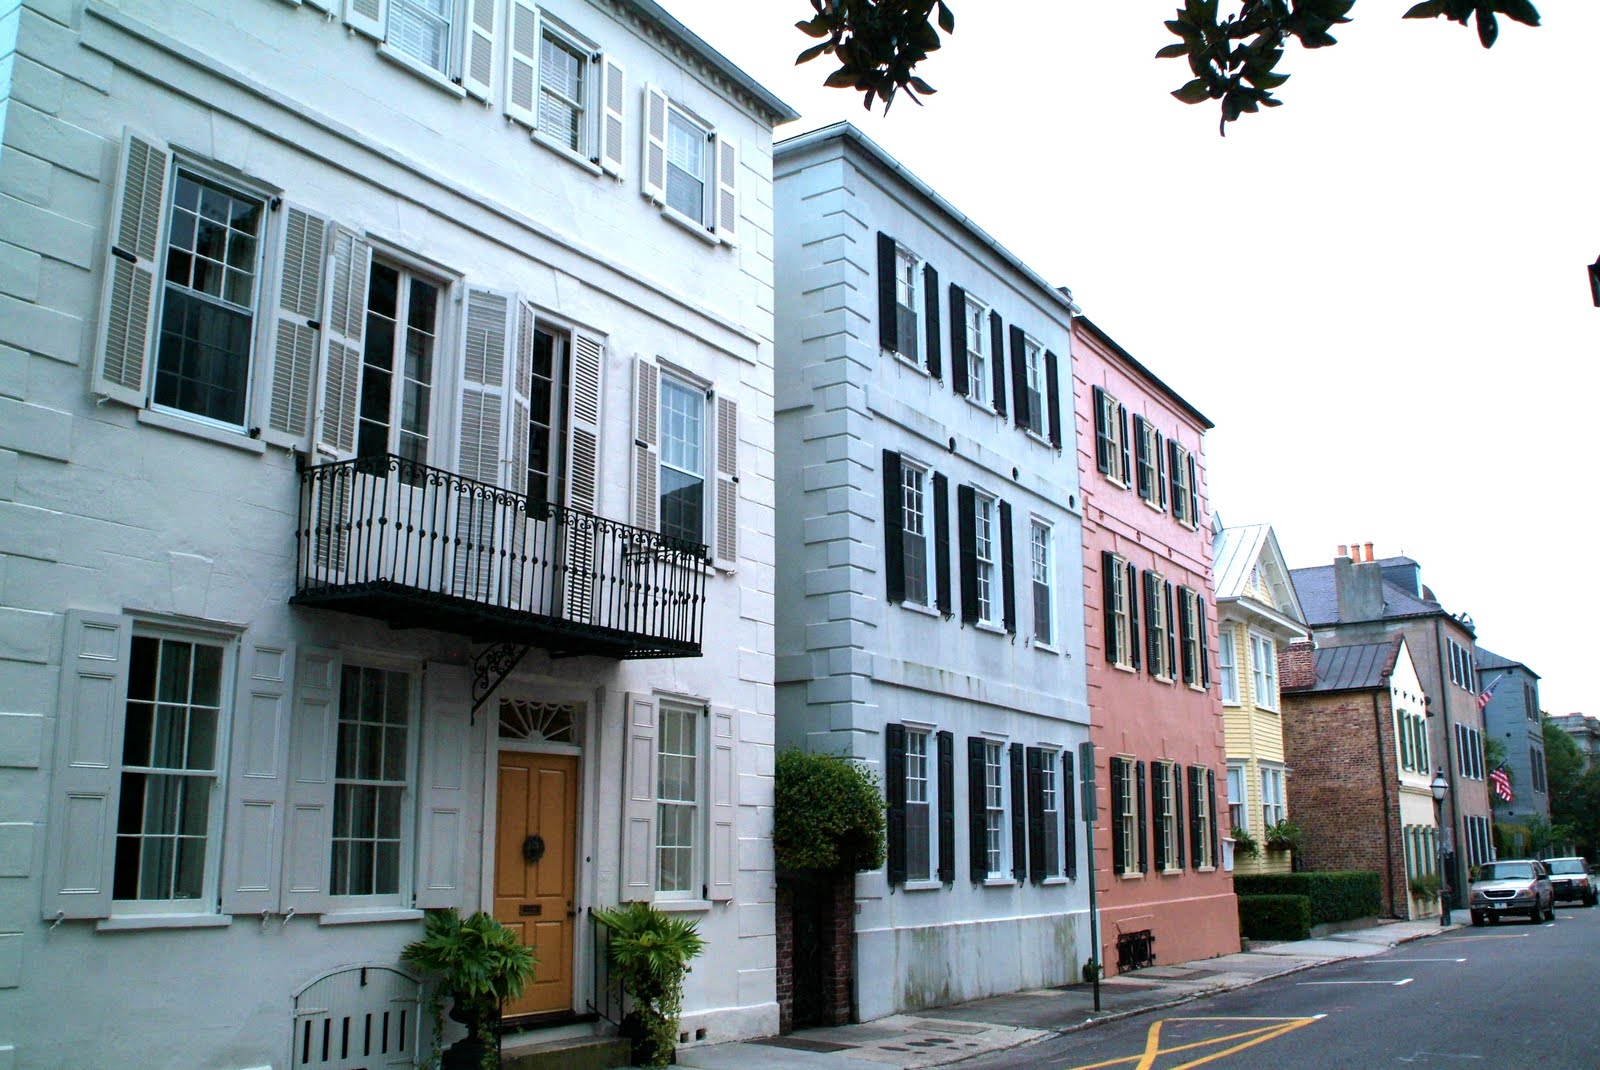 Towns cities rainbow row charleston s c for Charleston row houses